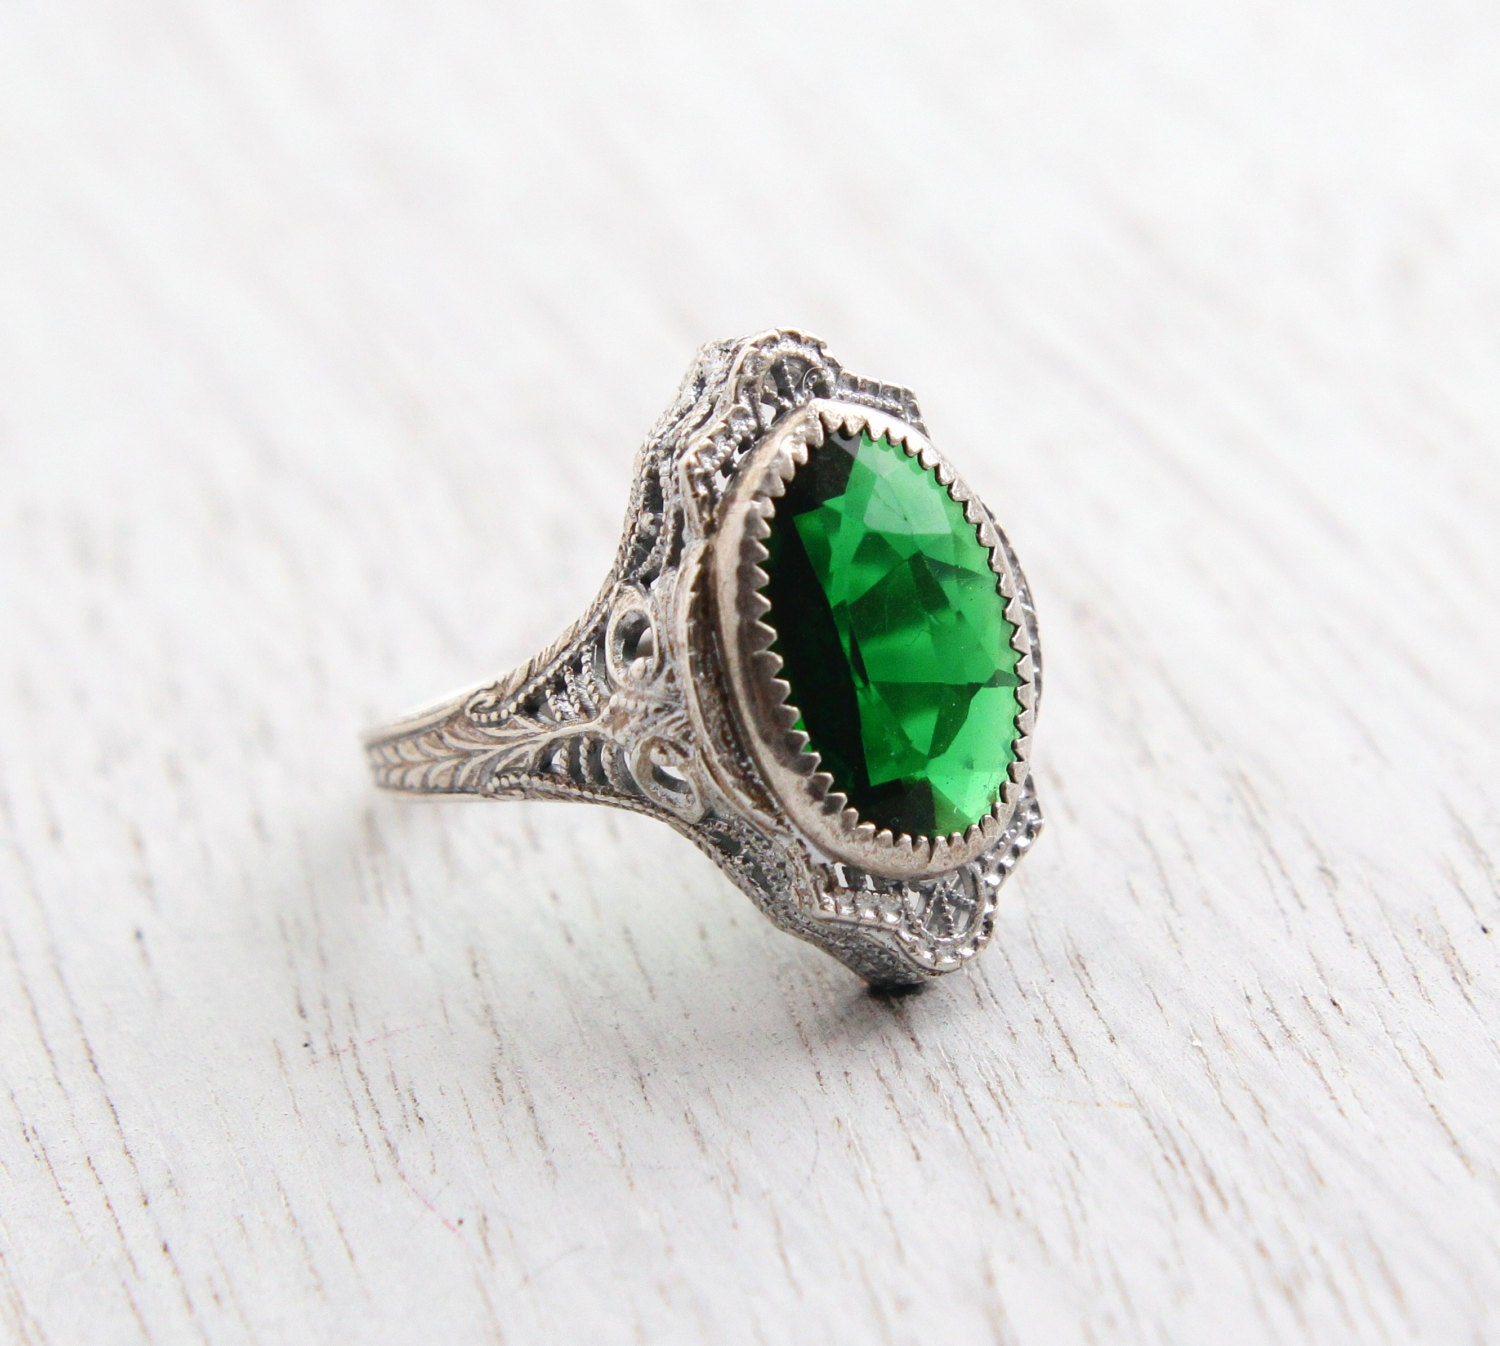 Antique Genuine Art Deco Emerald Green Ring By Maejeanvintage